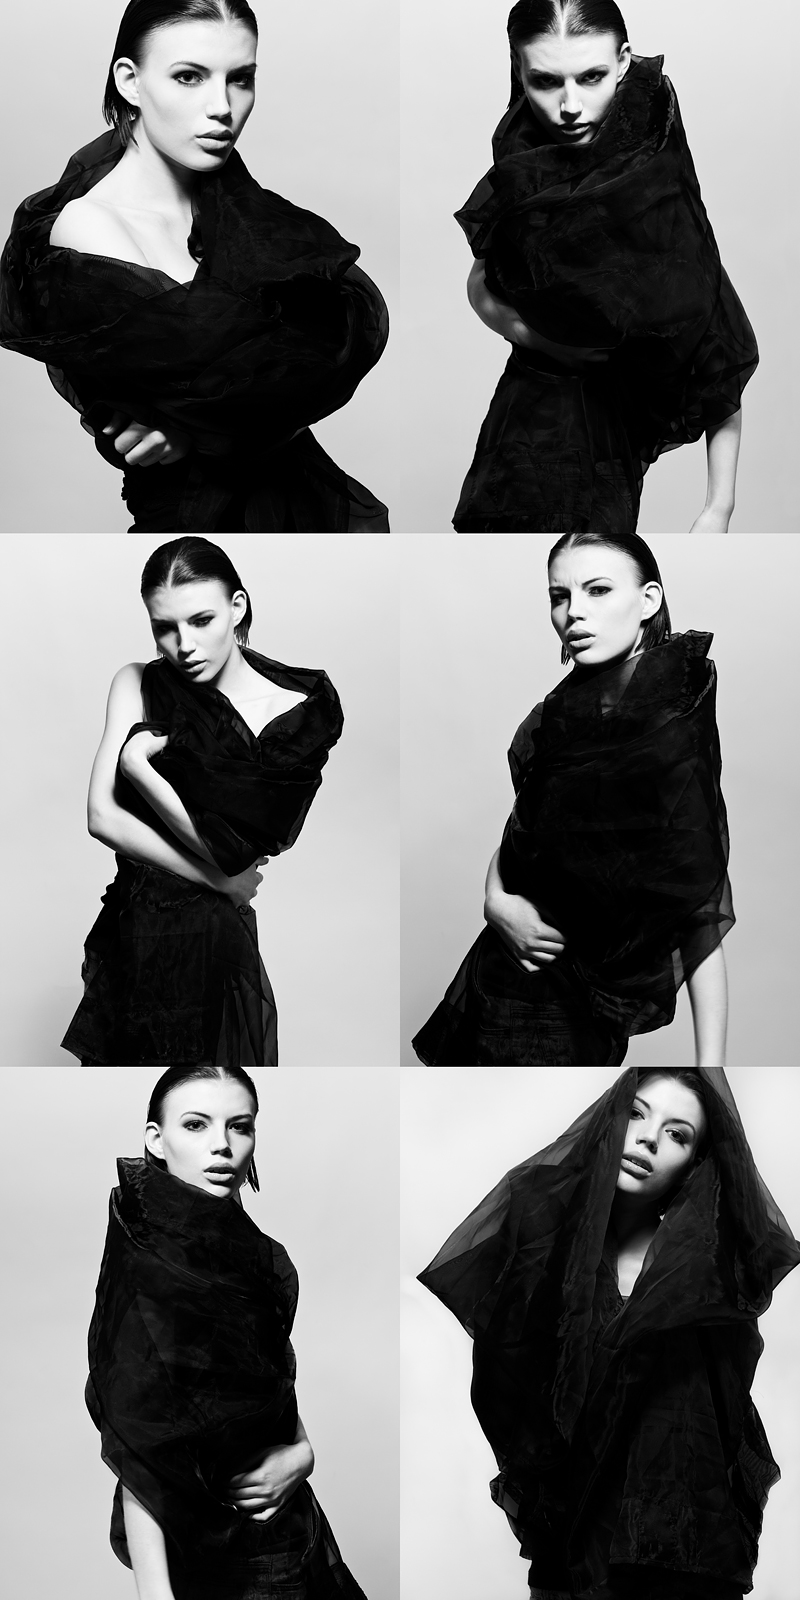 Gothenburg, Sweden Mar 16, 2011 Pierre Gander Model: Izabella D / Hair & makeup: Charlotte Ferm